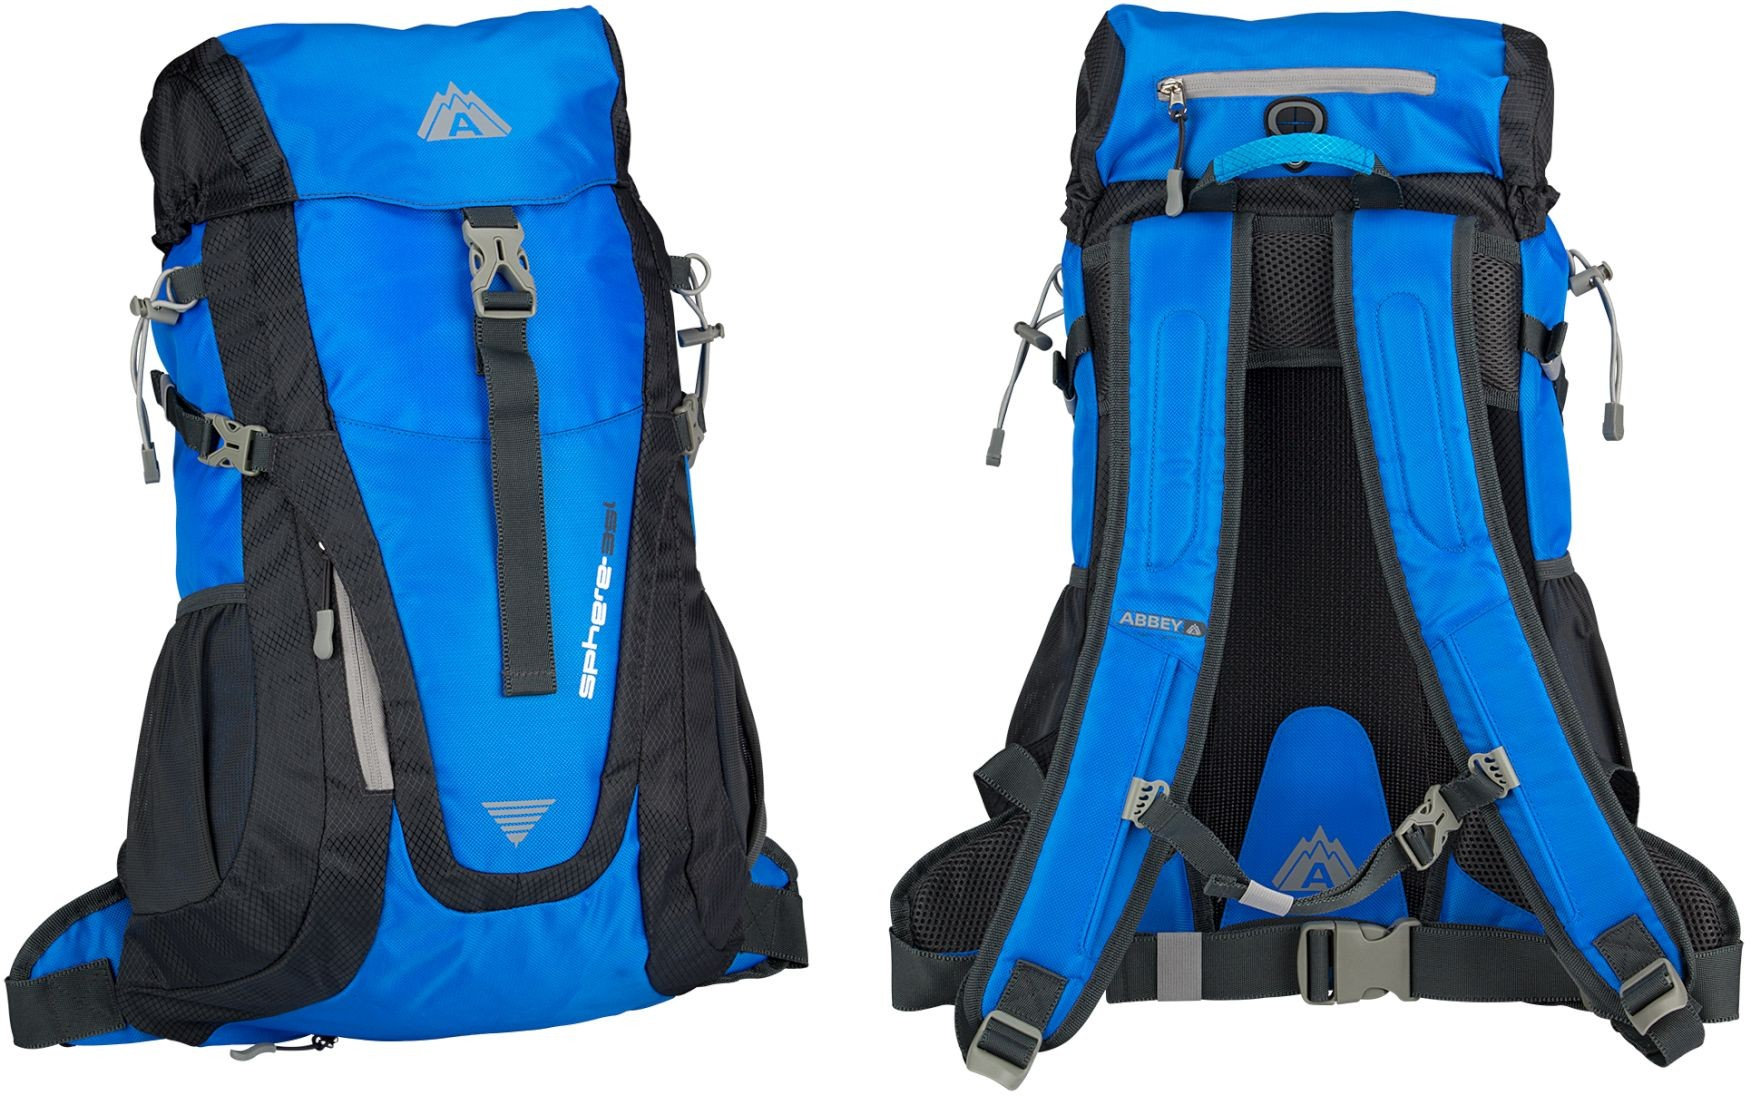 ABBEY Outdoor Areo-Fit Tūrisma Mugursoma 35L